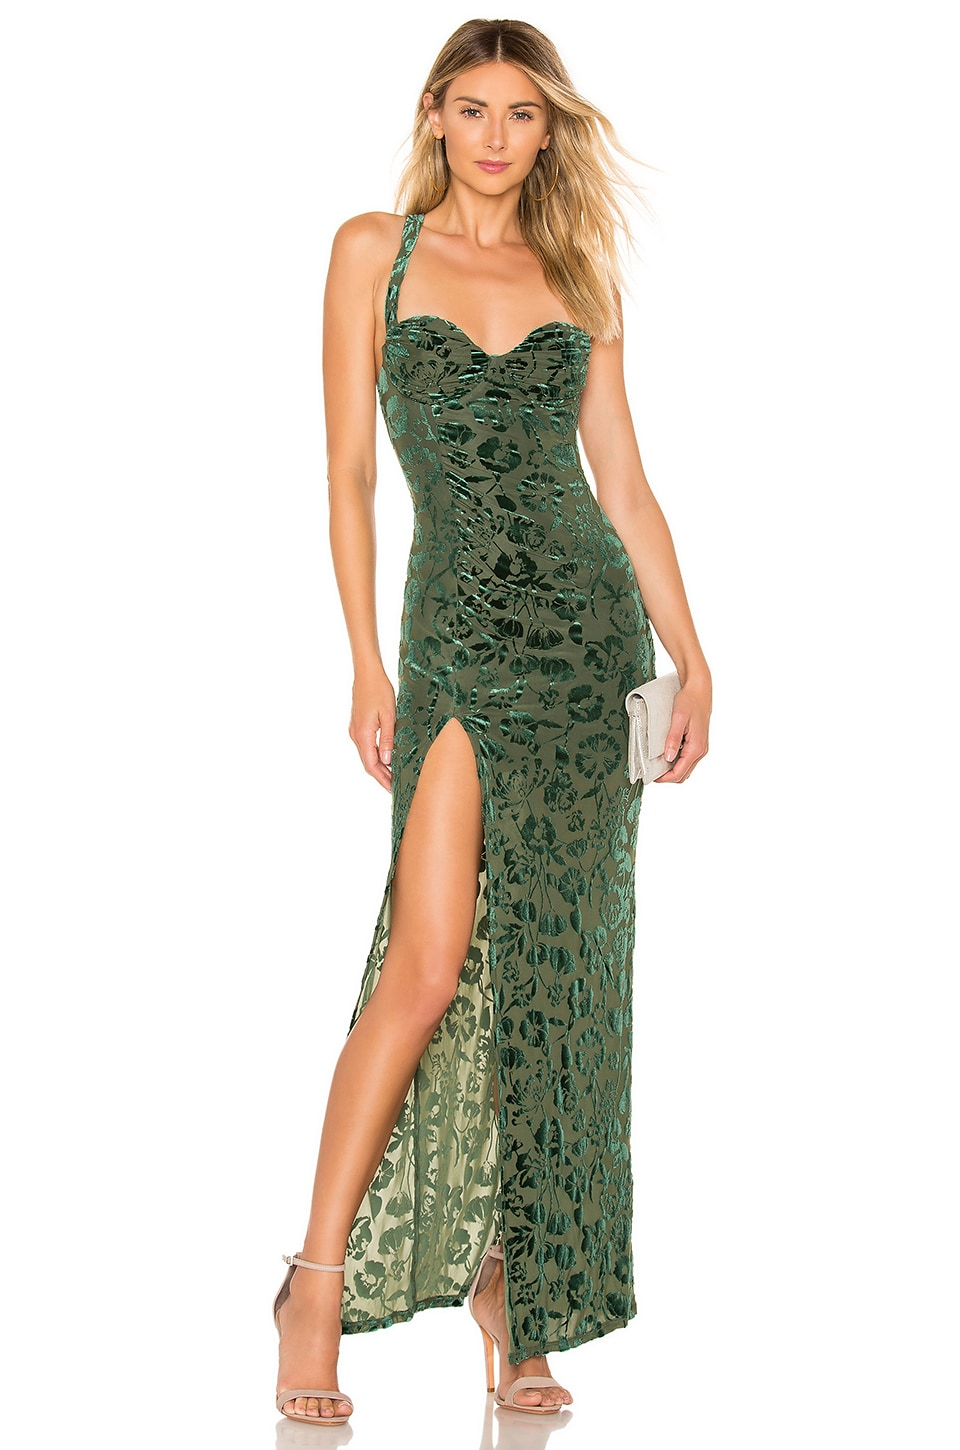 MAJORELLE Bianca Maxi Dress in Emerald Green